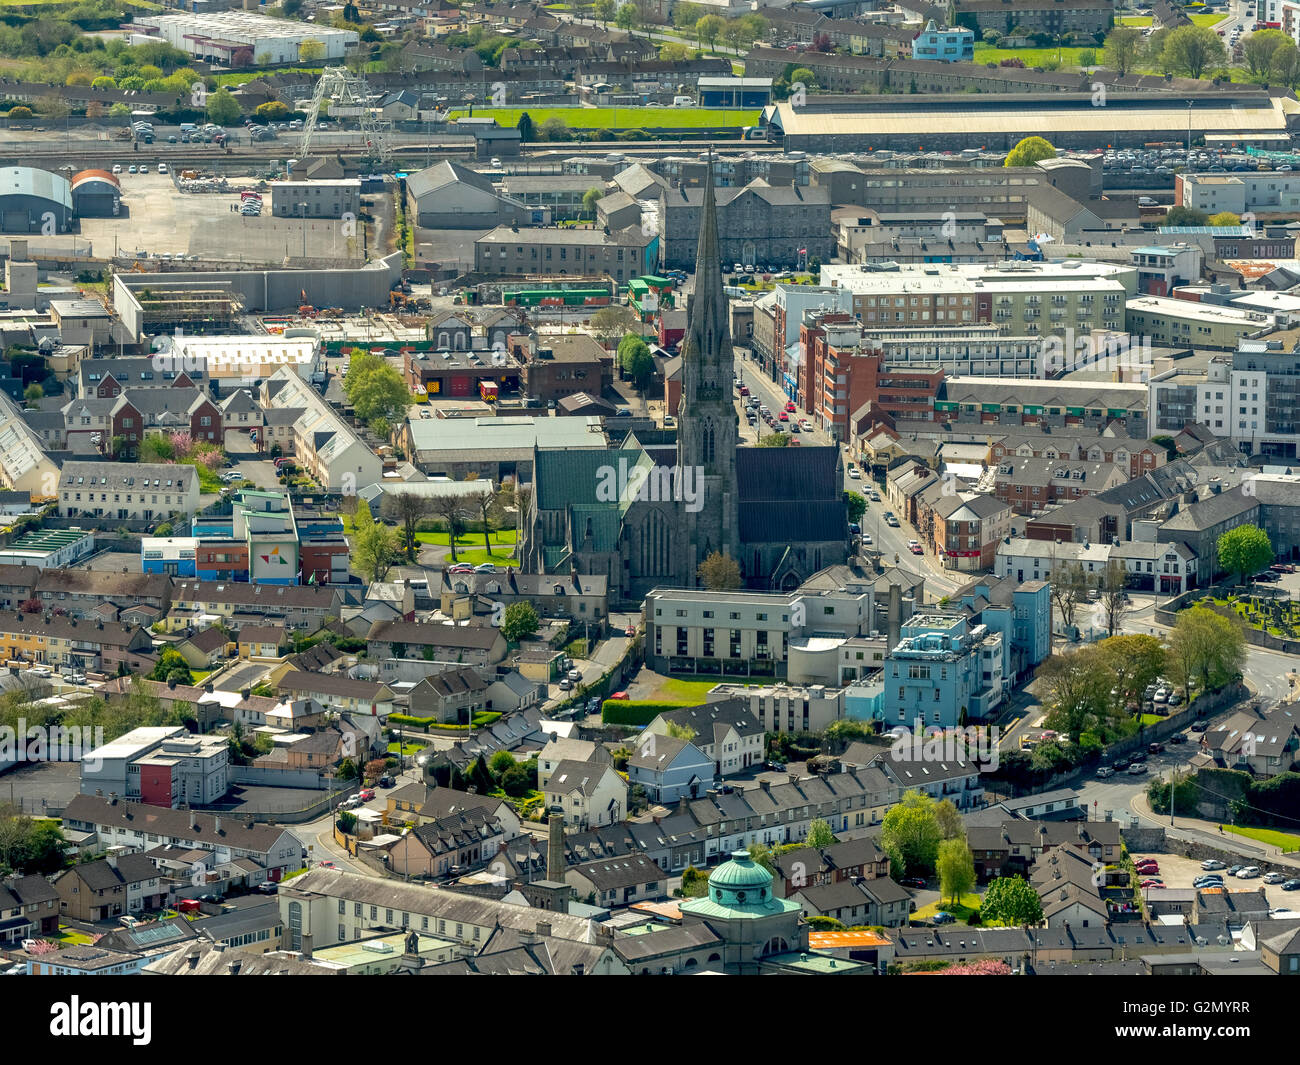 Aerial view, Downtown Limerick on the River Shannon with the